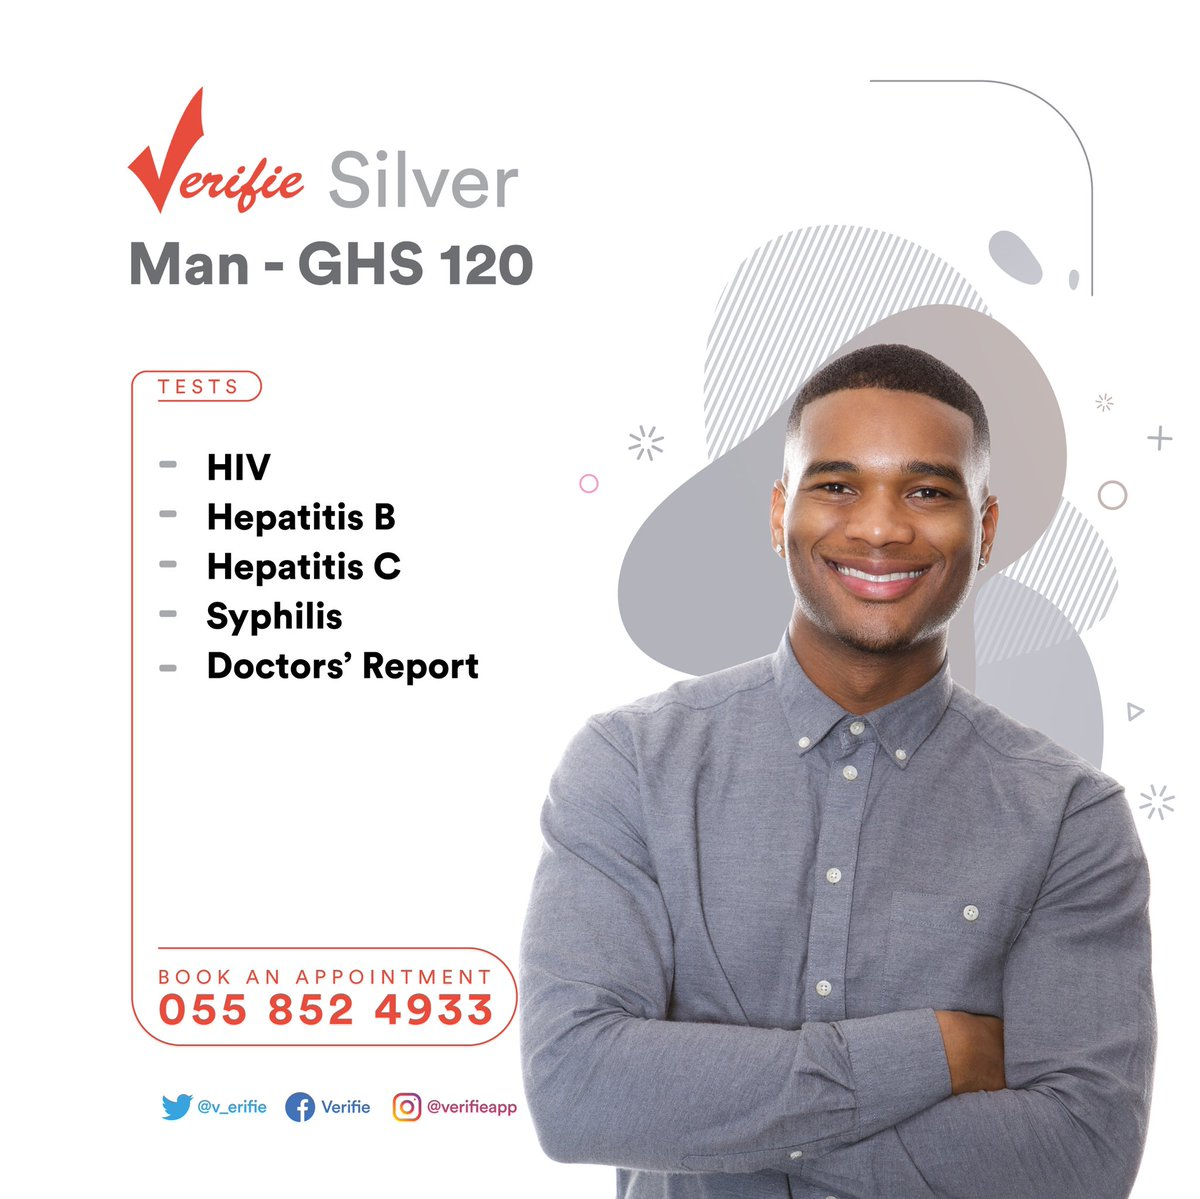 Essential and affordable instant tests for everyone. Get your results within 20mins. No hustle. We offer home service too. Click link to book an appointment